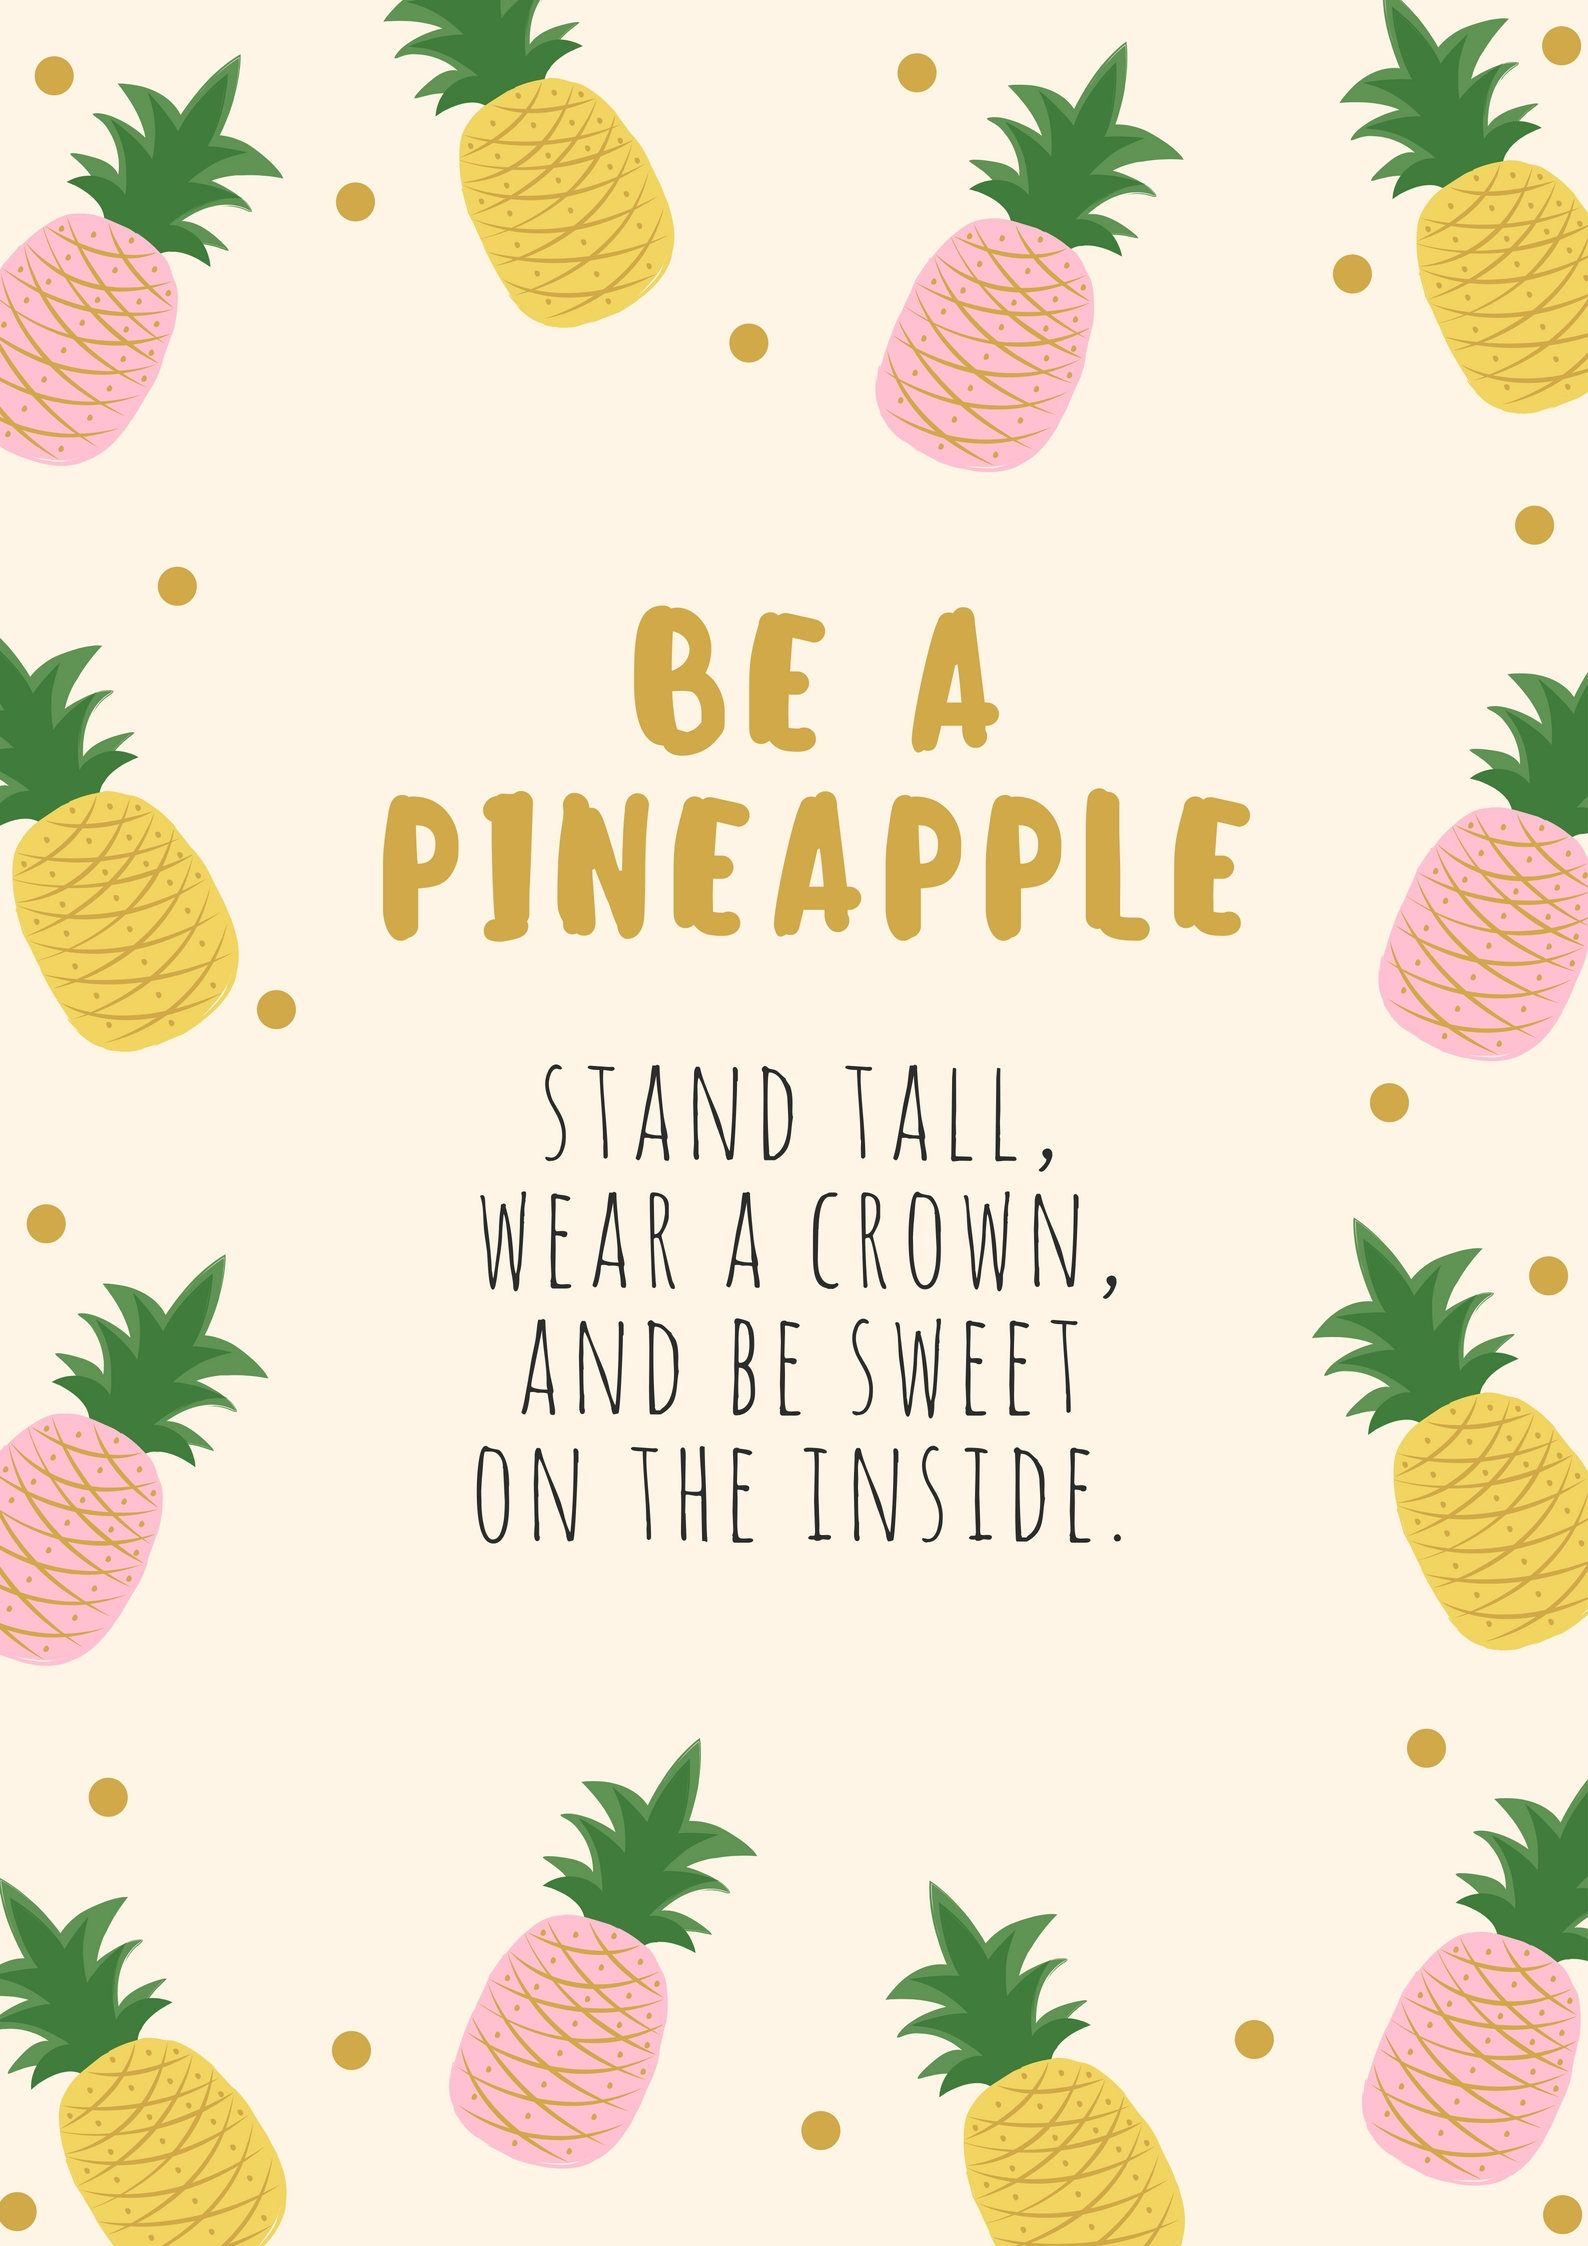 Pineapple fruit quotes